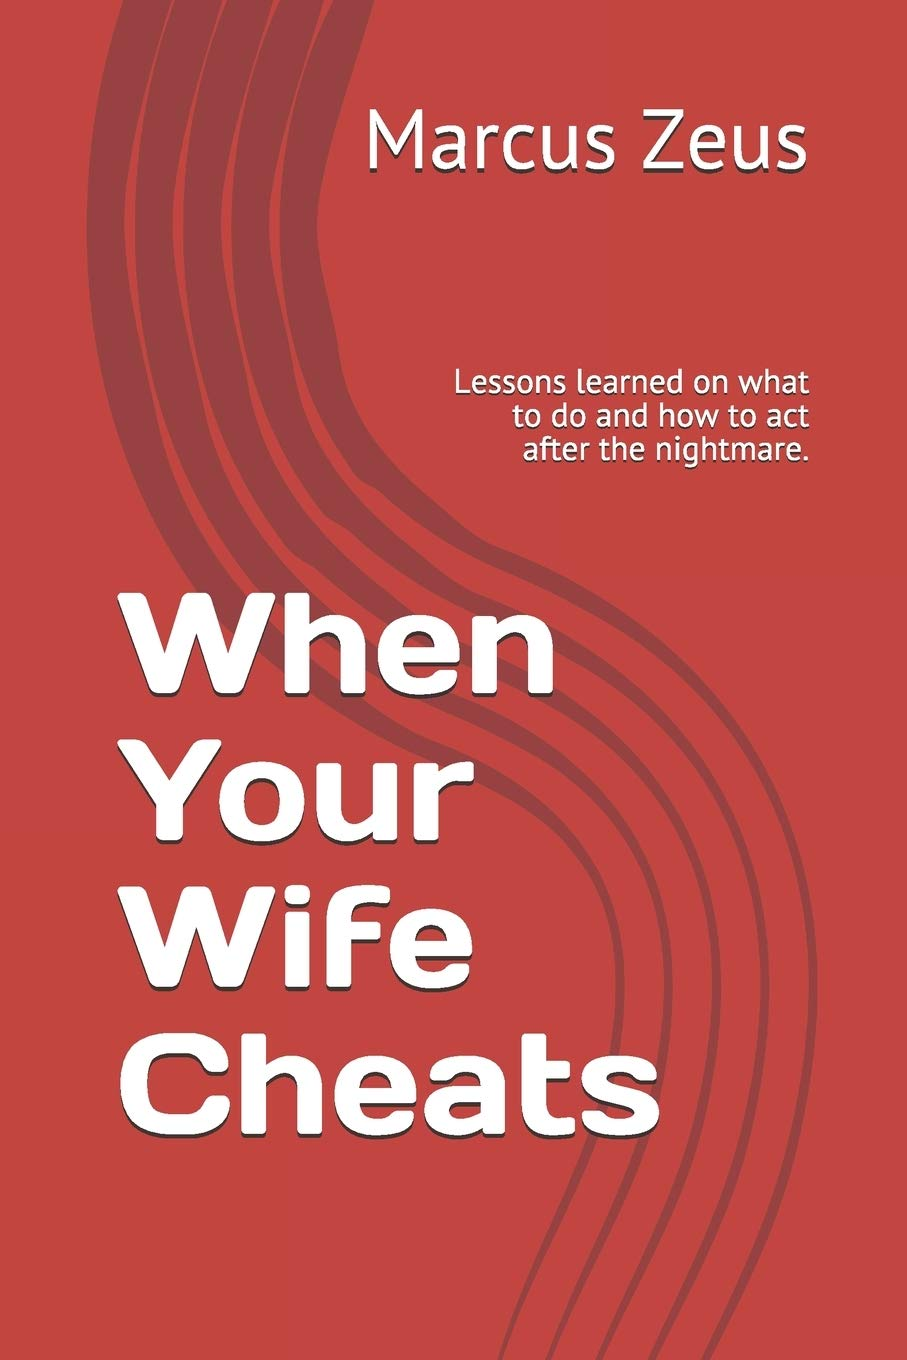 Cheats with wife How To